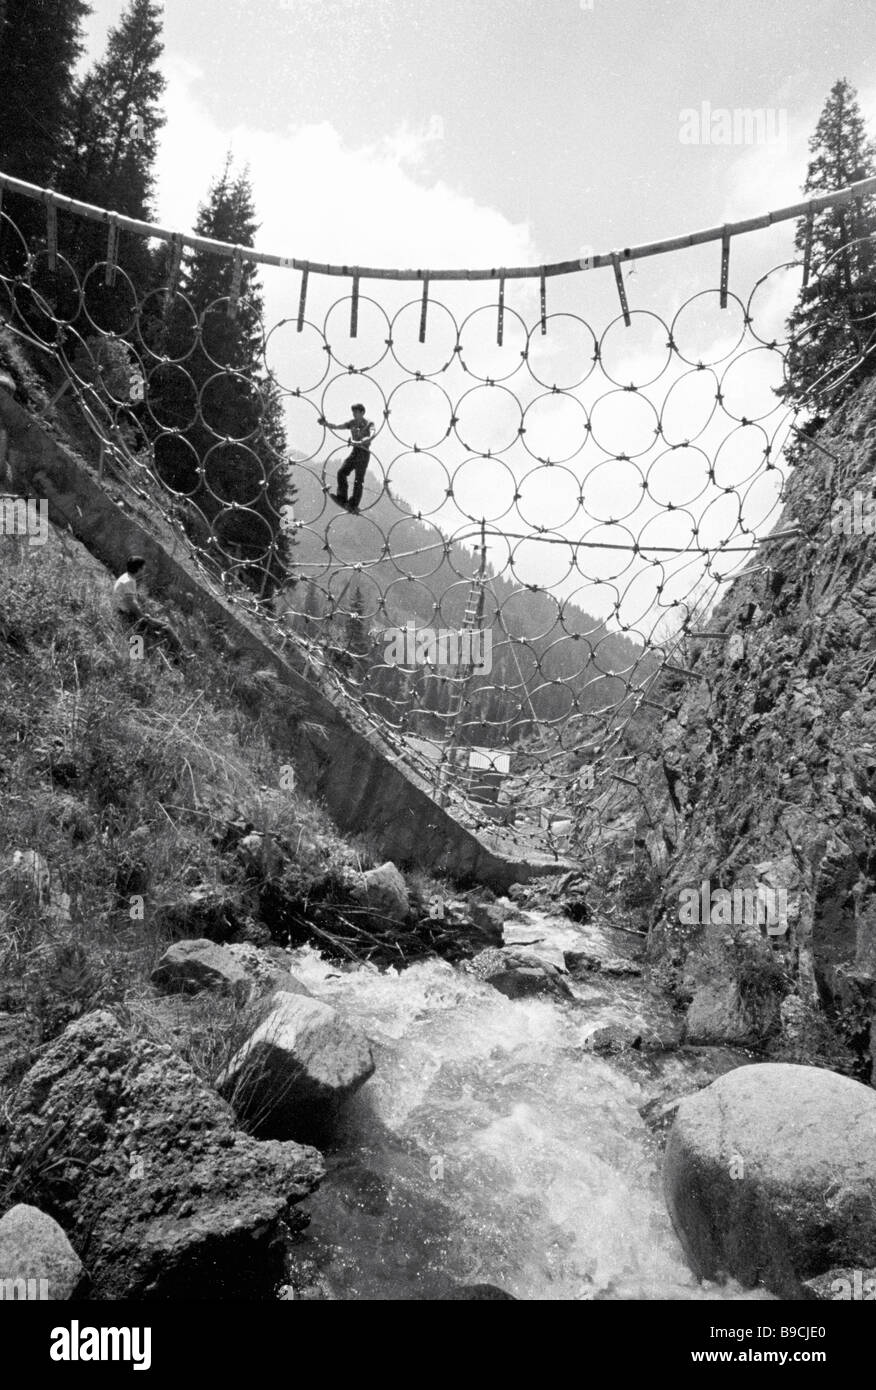 Netting traps to control mud streams in gorges of Zailiisky Alatau - Stock Image